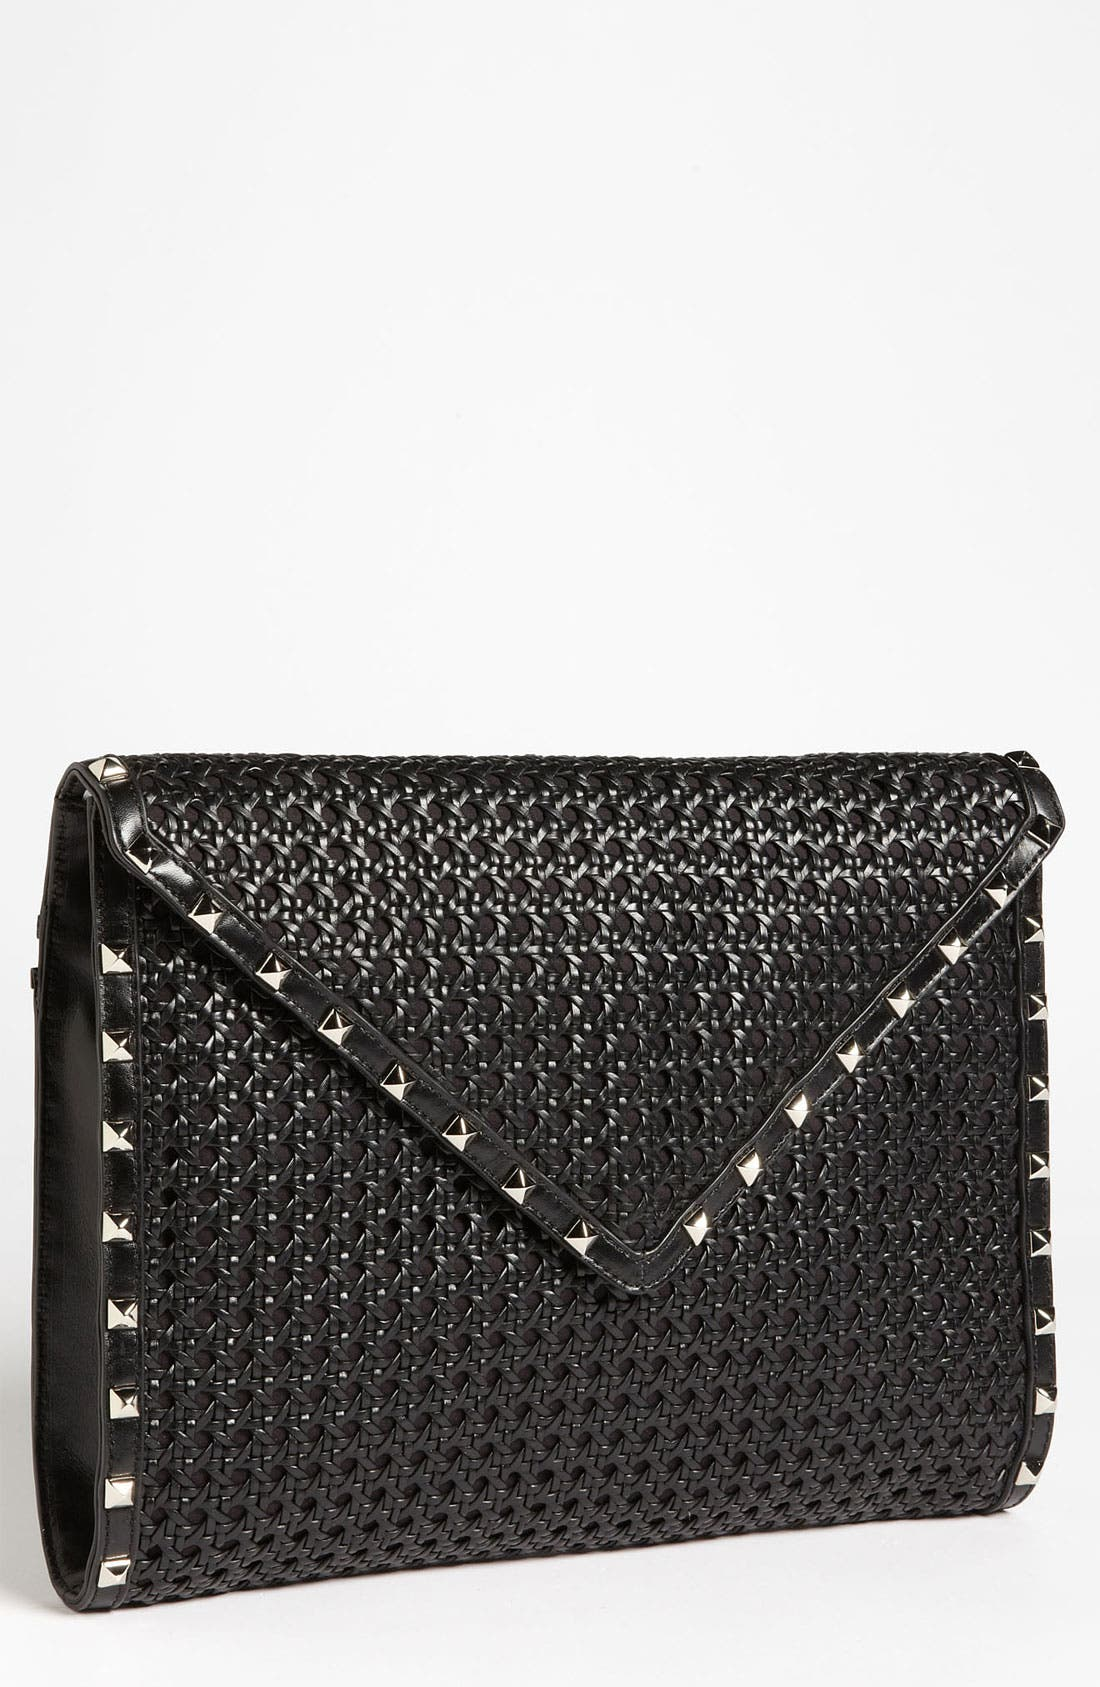 Main Image - Rebecca Minkoff 'Owen' Envelope Clutch